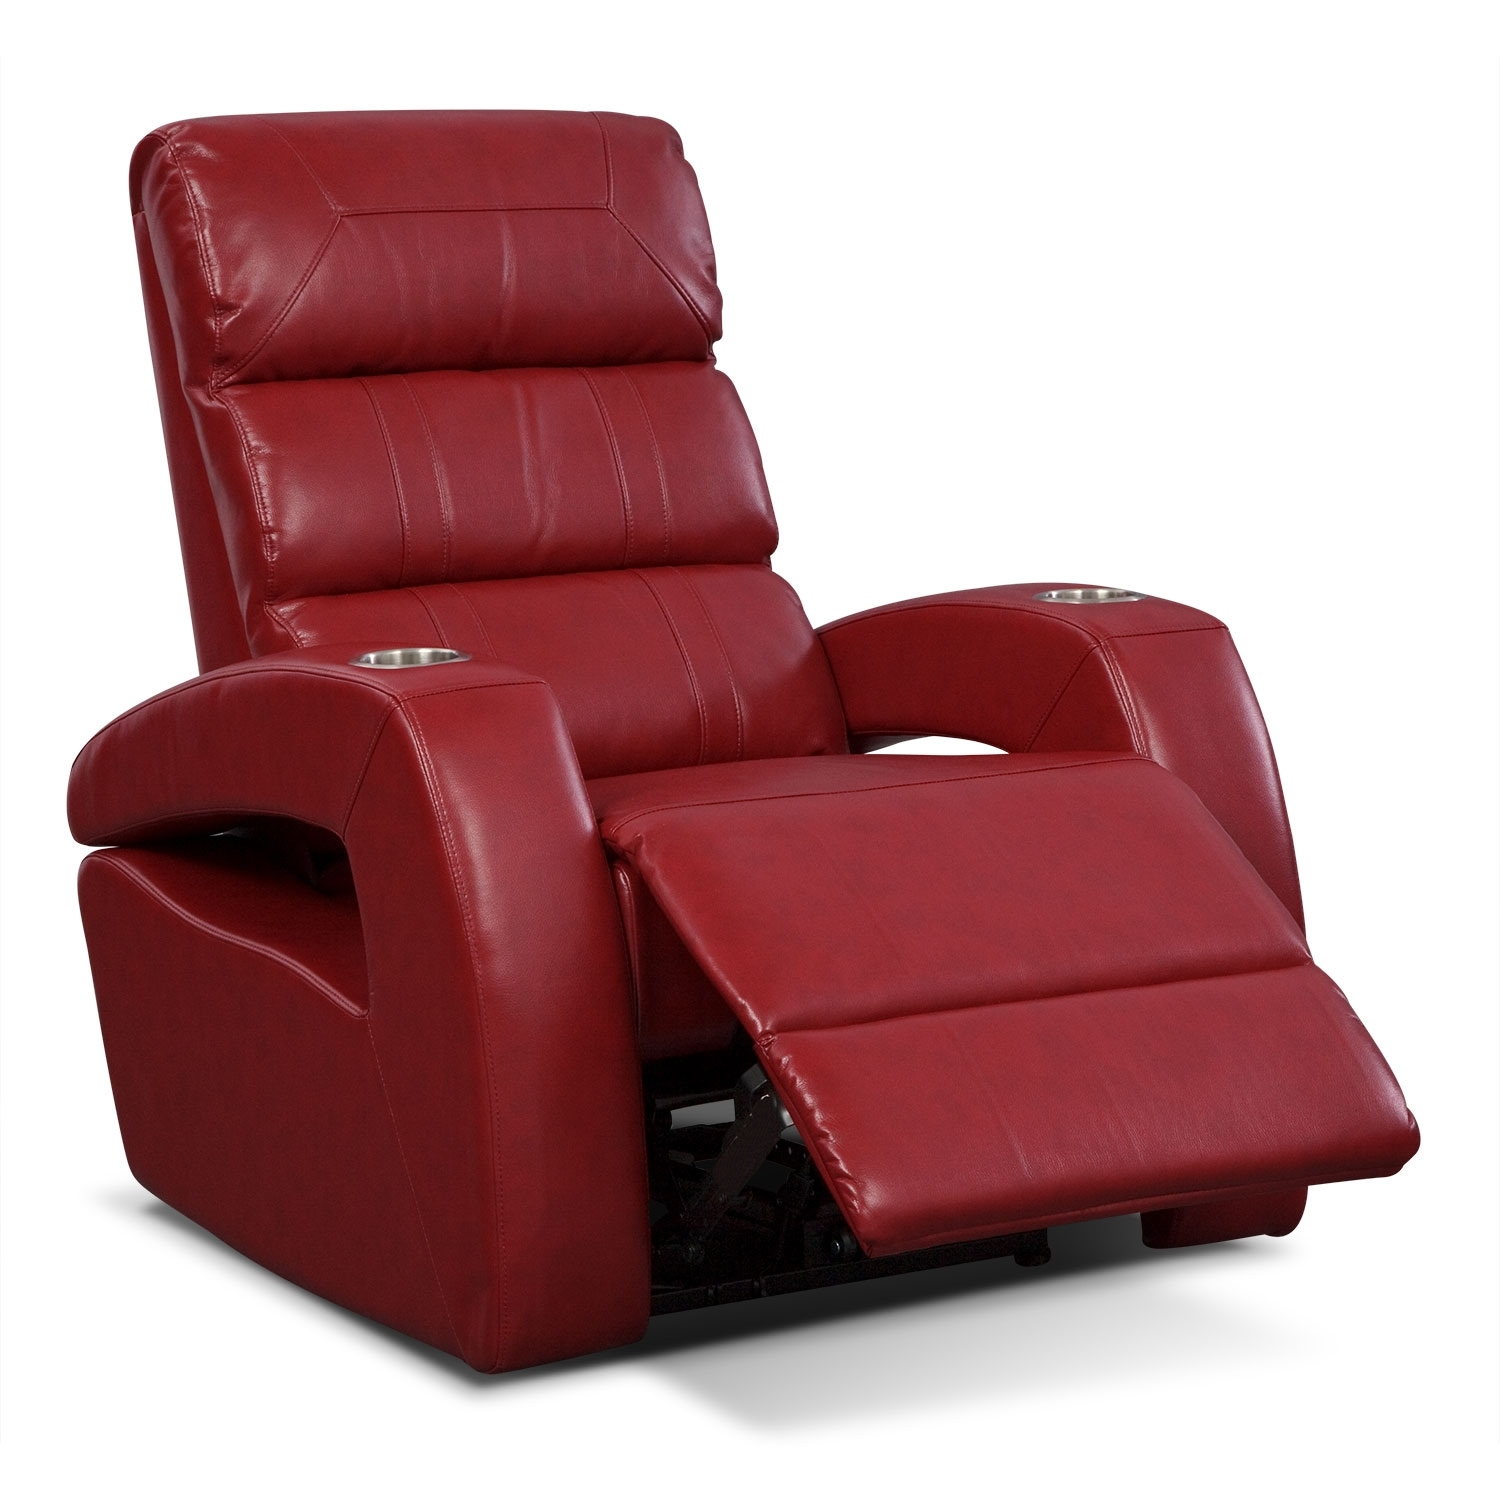 red recliner chairs bedroom sofa chair paramount power furniture